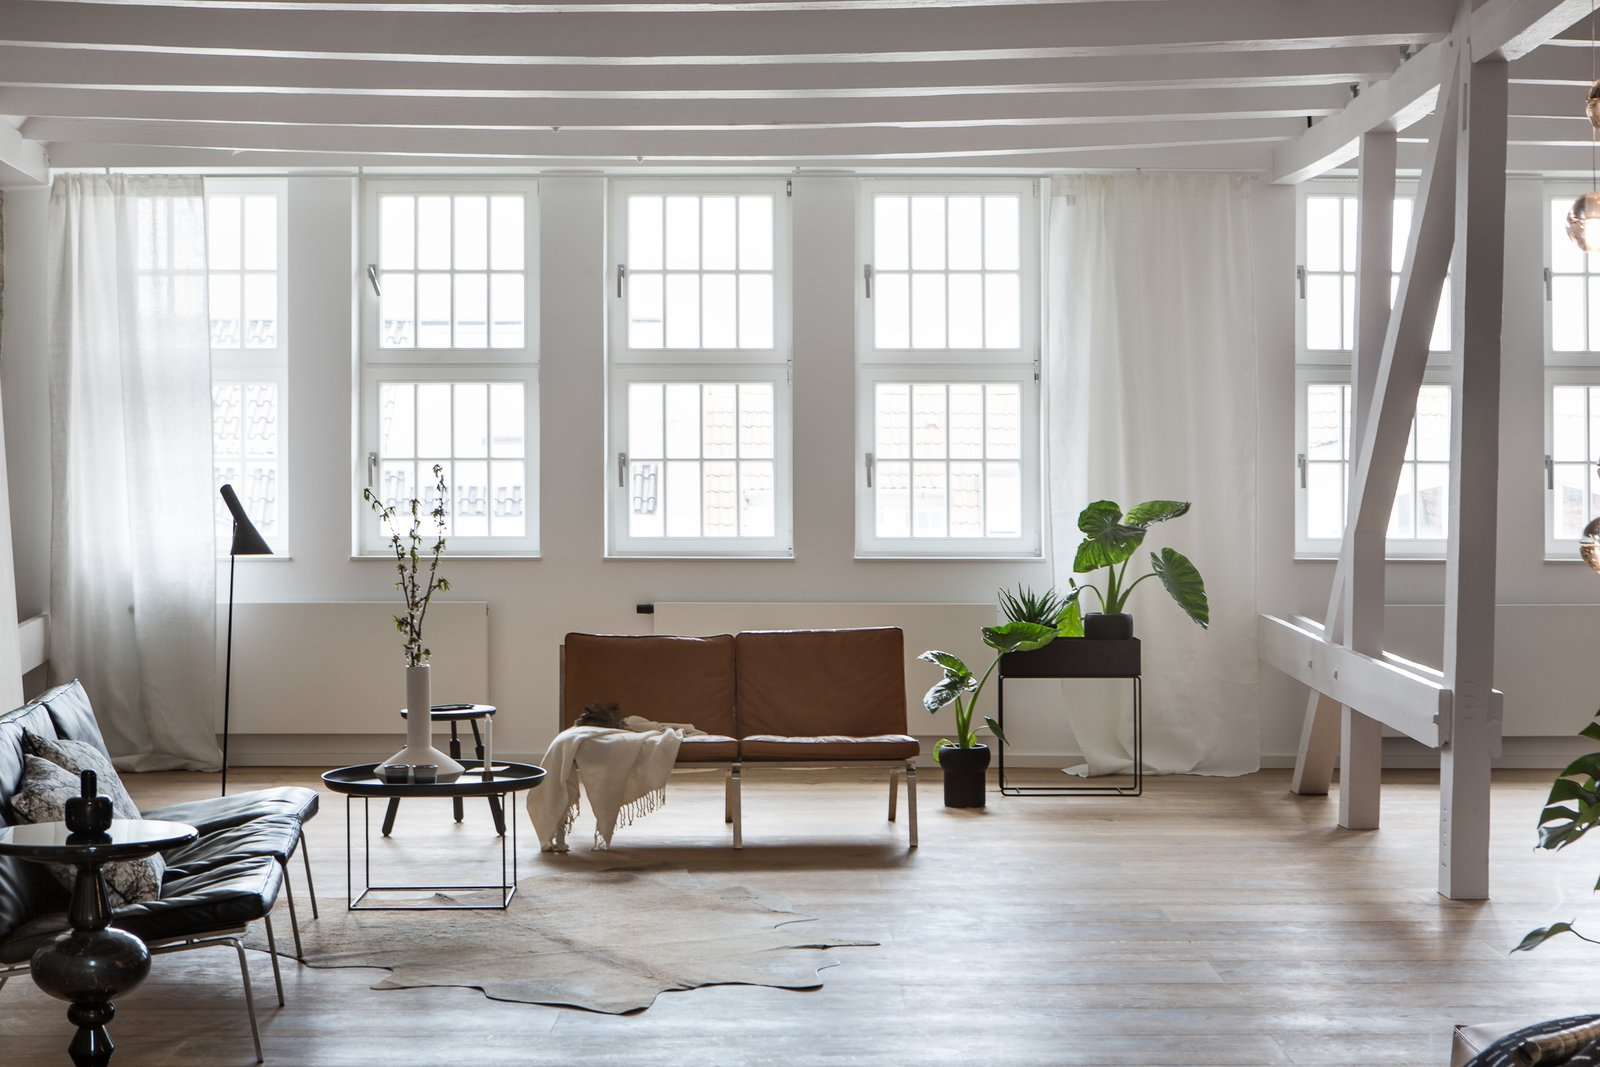 This Modern Loft For Sale Will Have You Dreaming Of Berlin